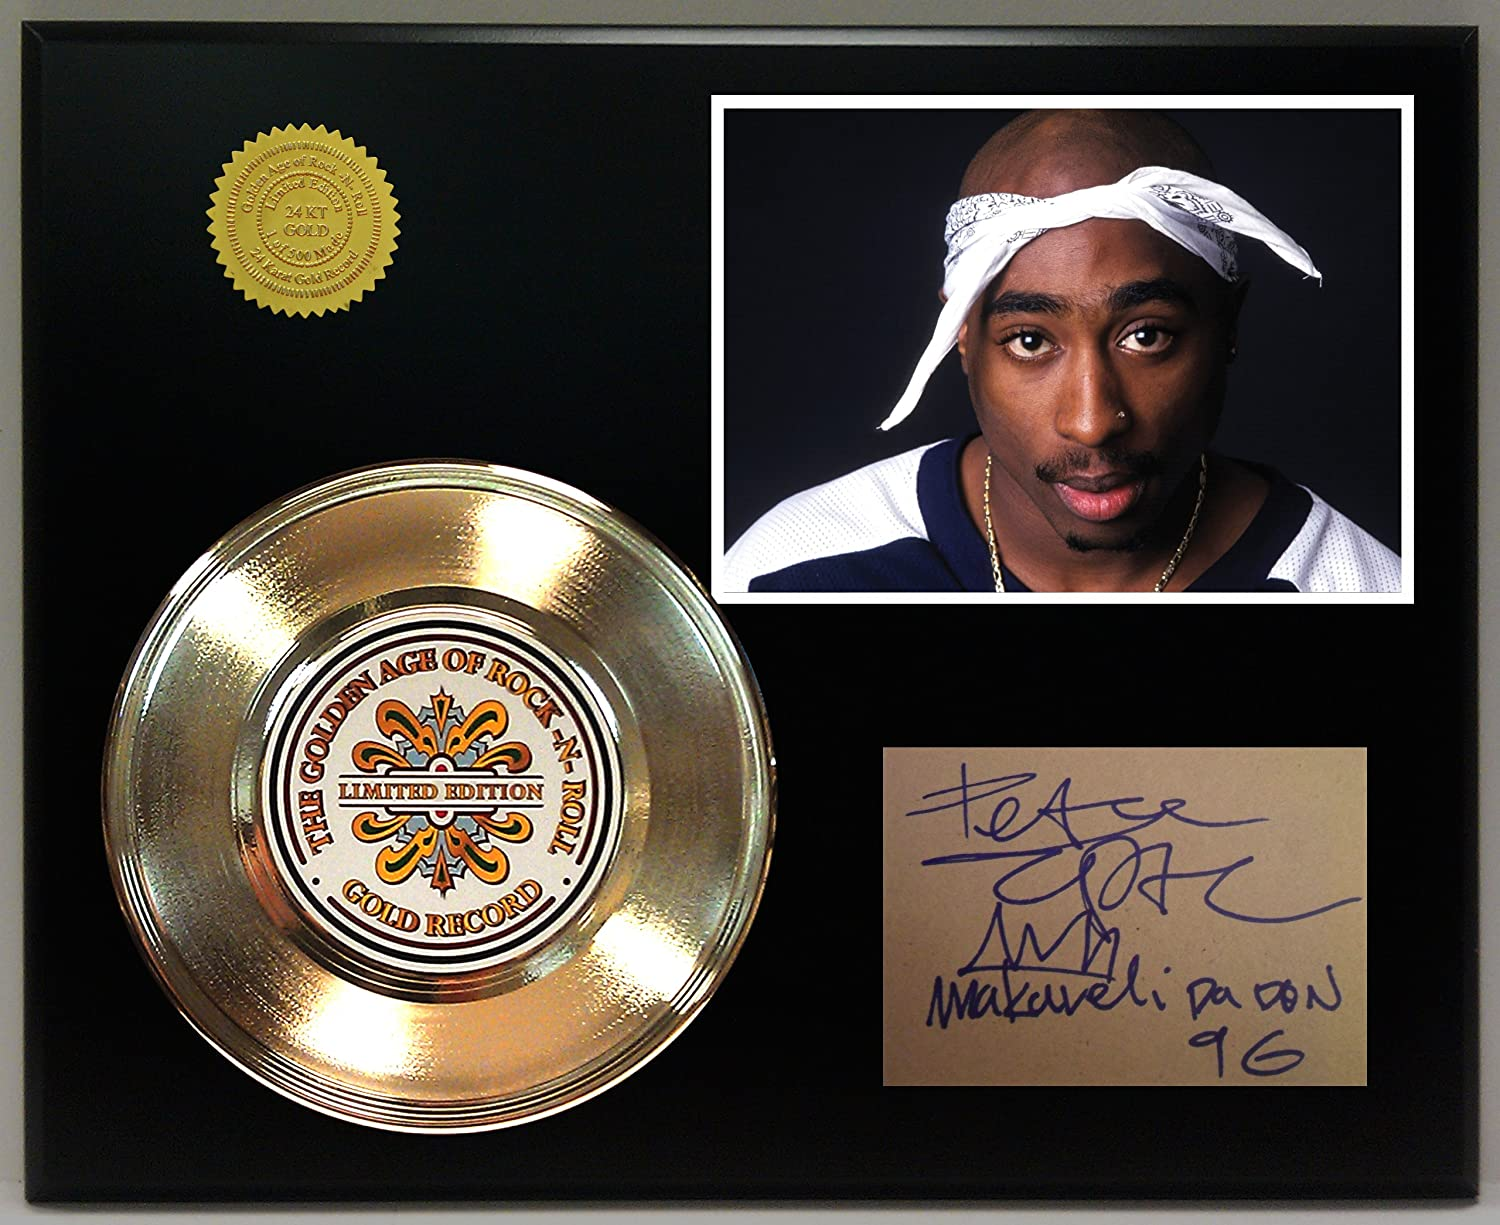 2Pac Gold Record Signature Series LTD Edition Display Gold Record Outlet